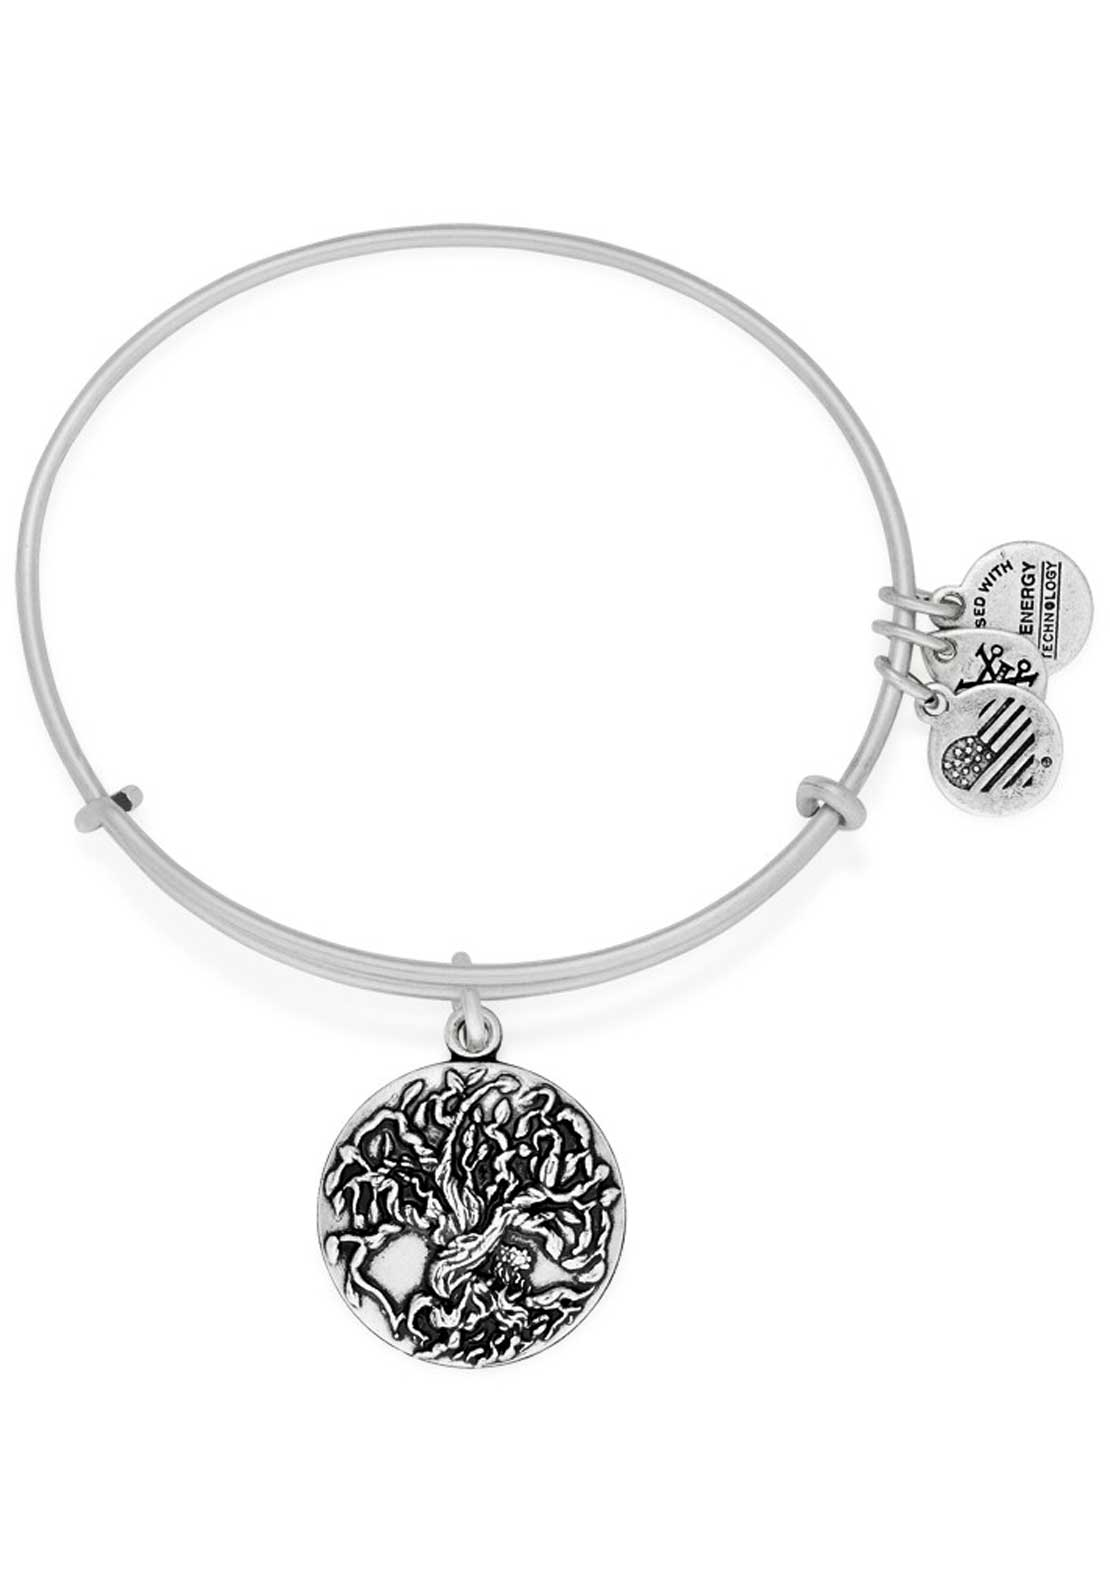 Alex and Ani Tree of Life Bracelet, Silver